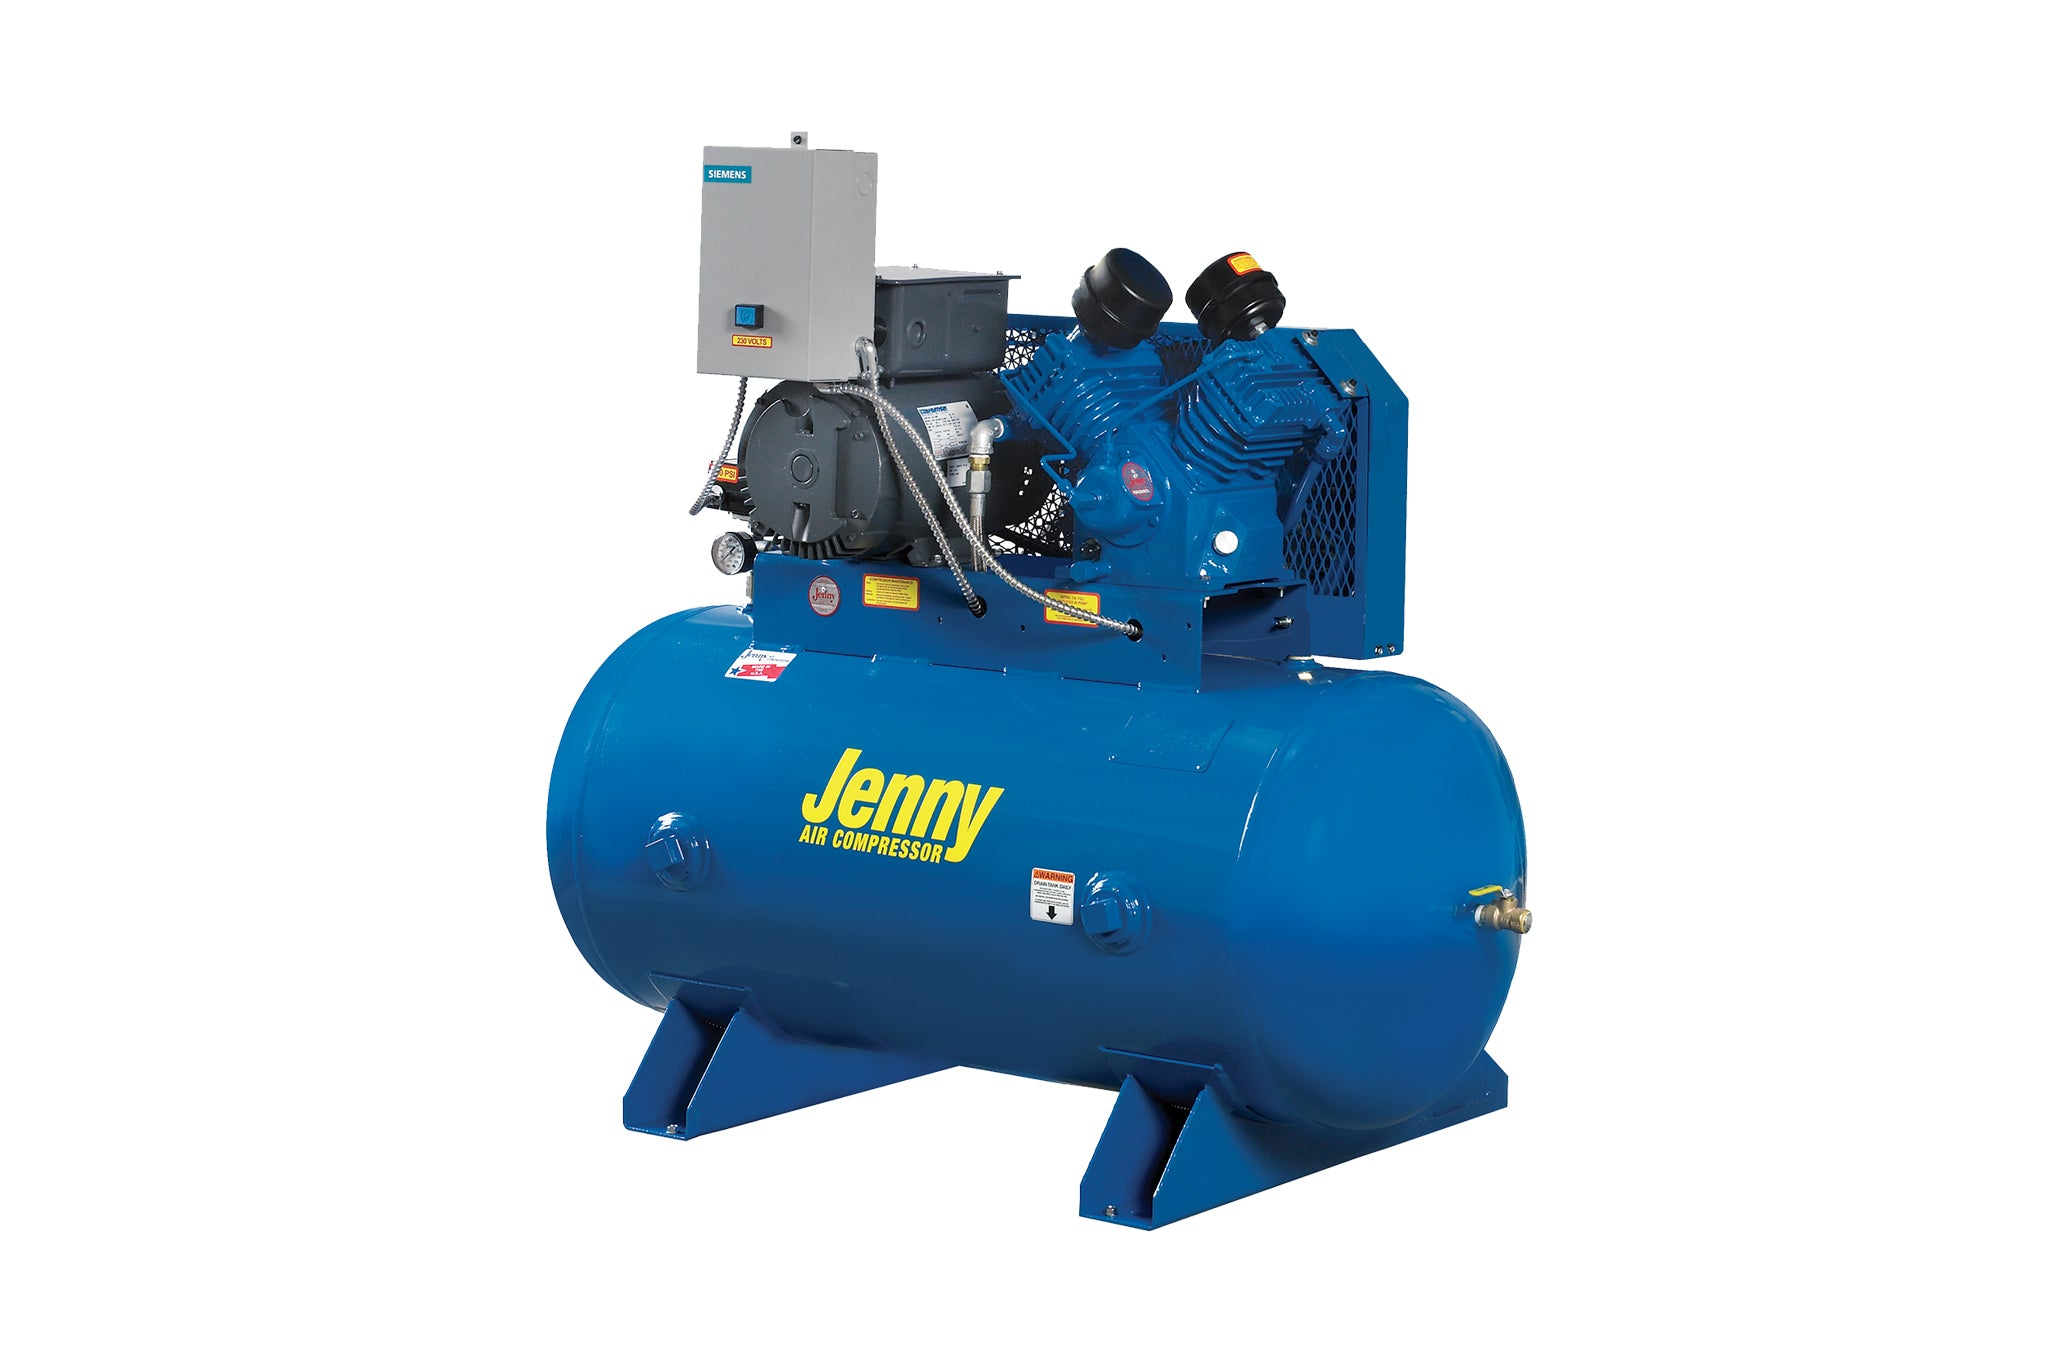 jenny g3a 60 3hp 60 gallon single stage air compressor obsessed garage